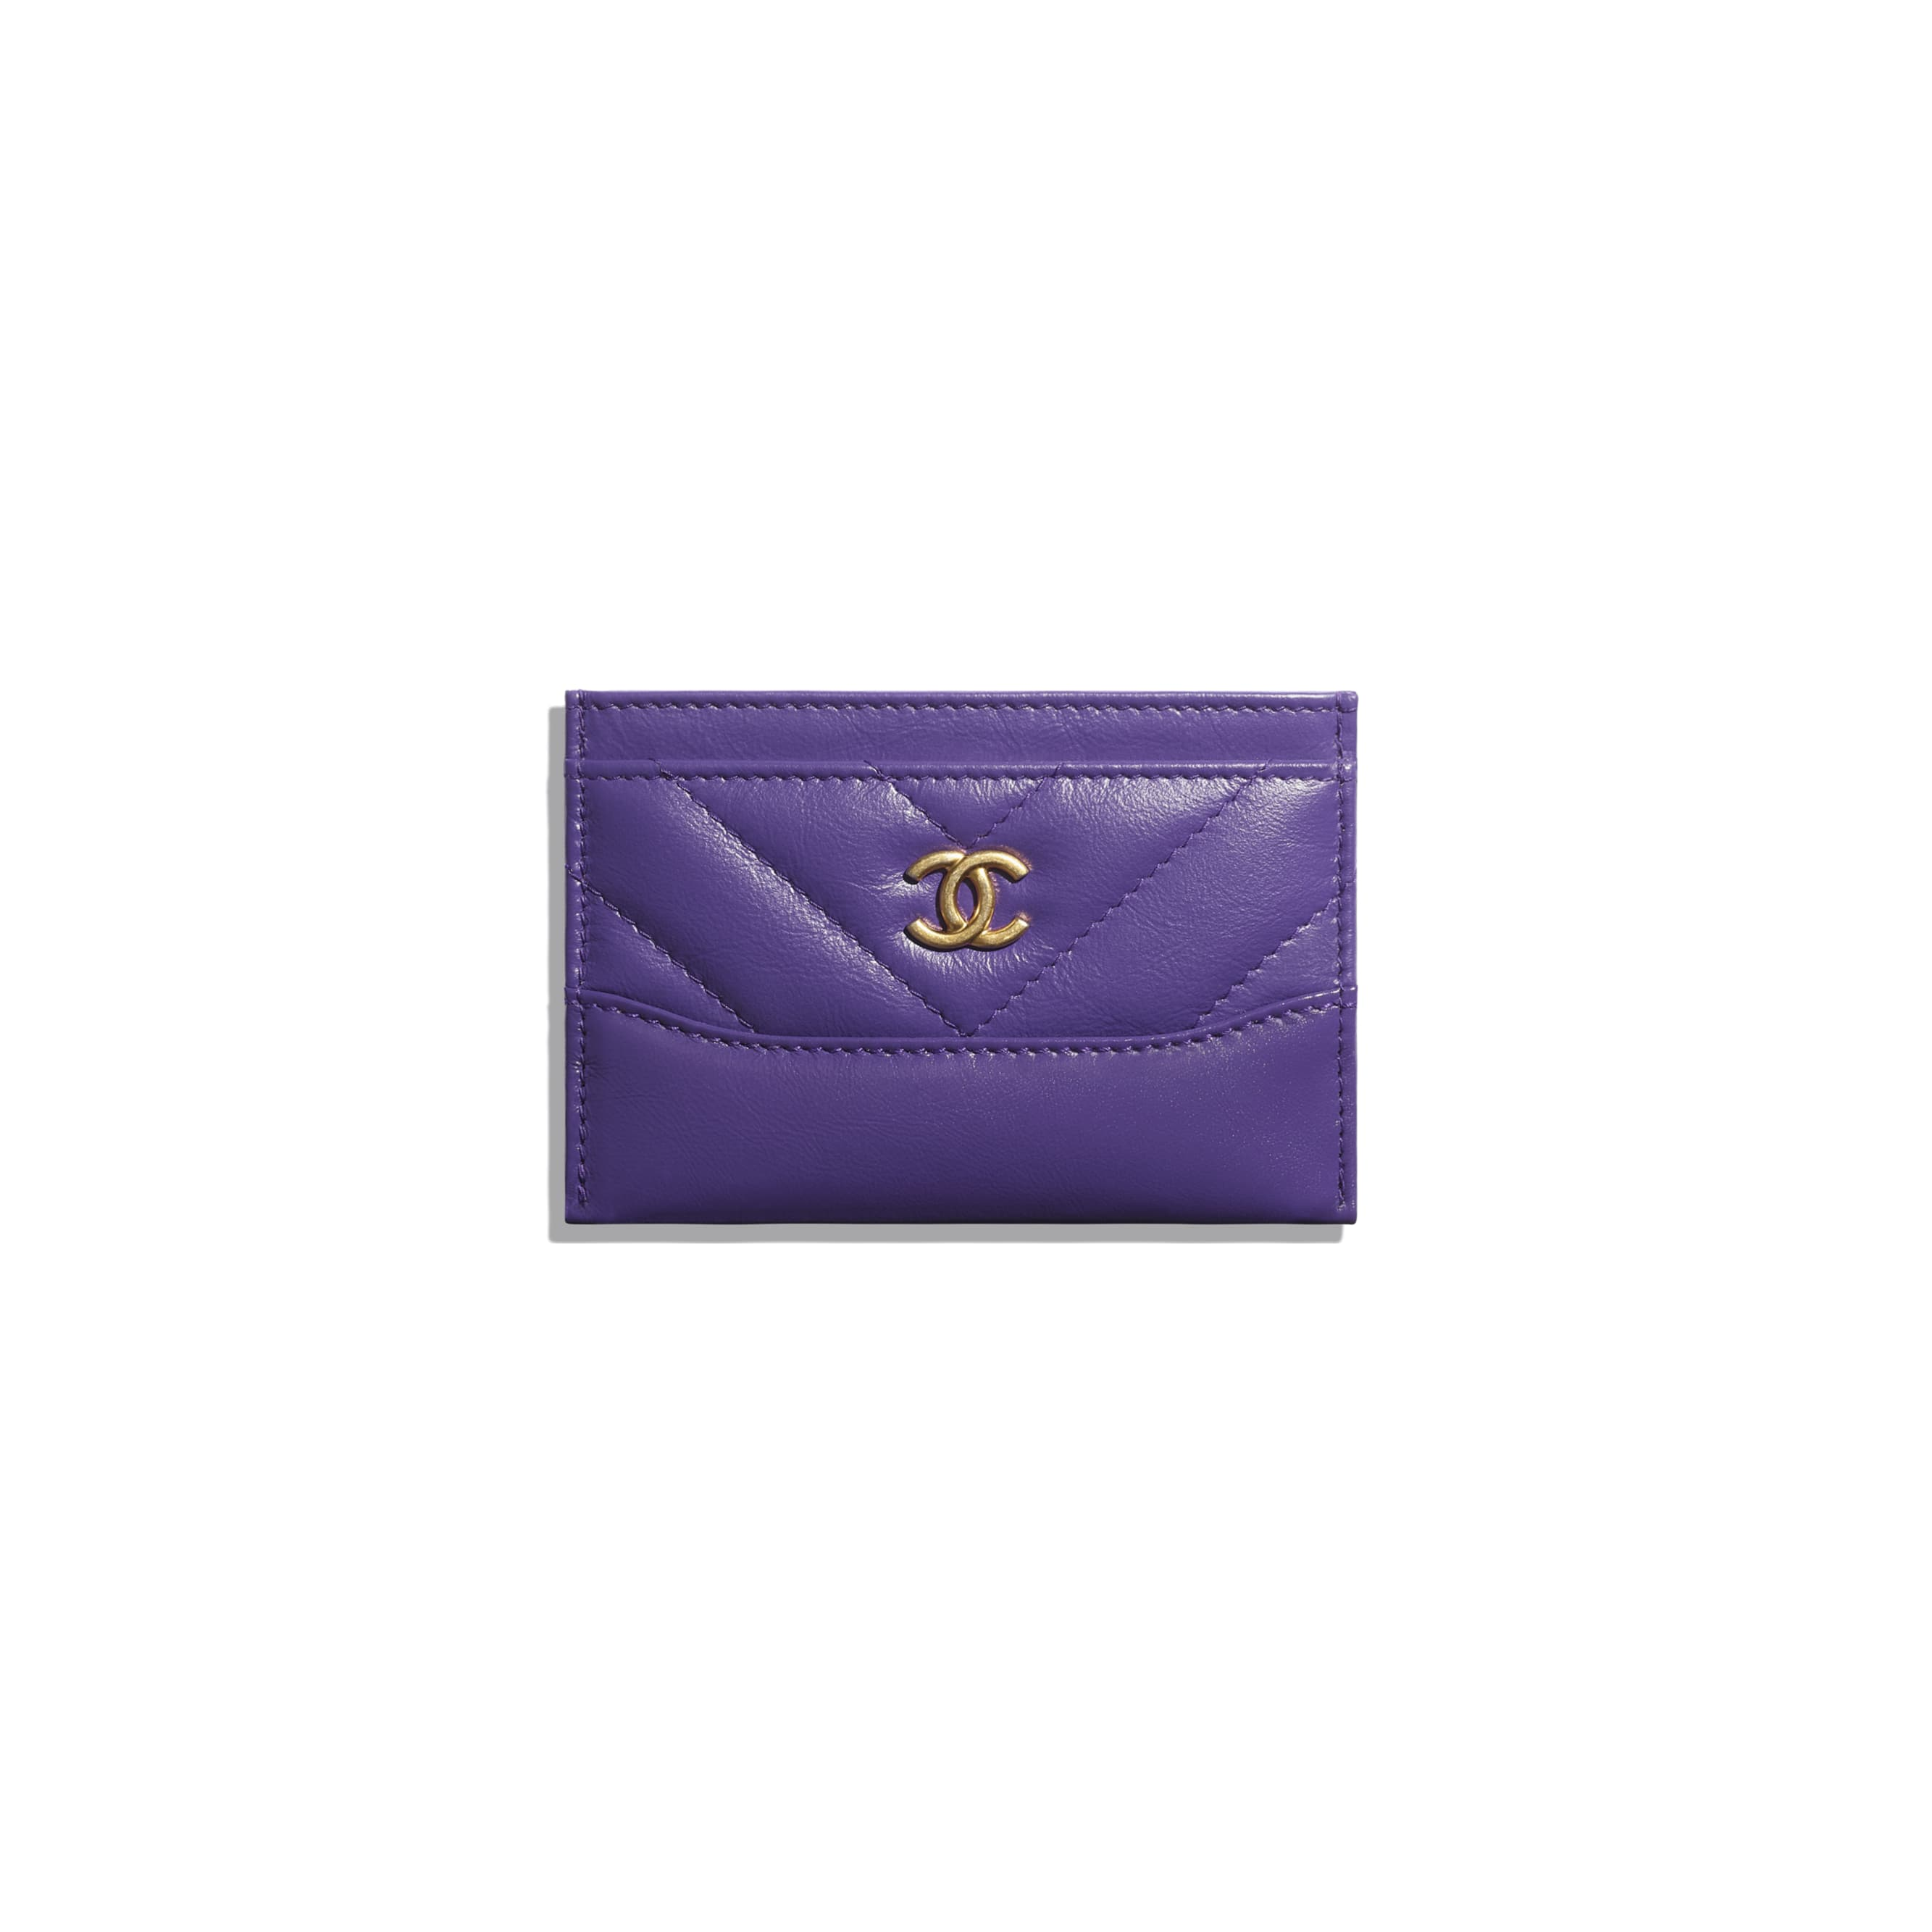 Card Holder - Purple - Aged Calfskin, Smooth Calfskin, Gold-Tone, Silver-Tone & Ruthenium-Finish Metal - CHANEL - Default view - see standard sized version